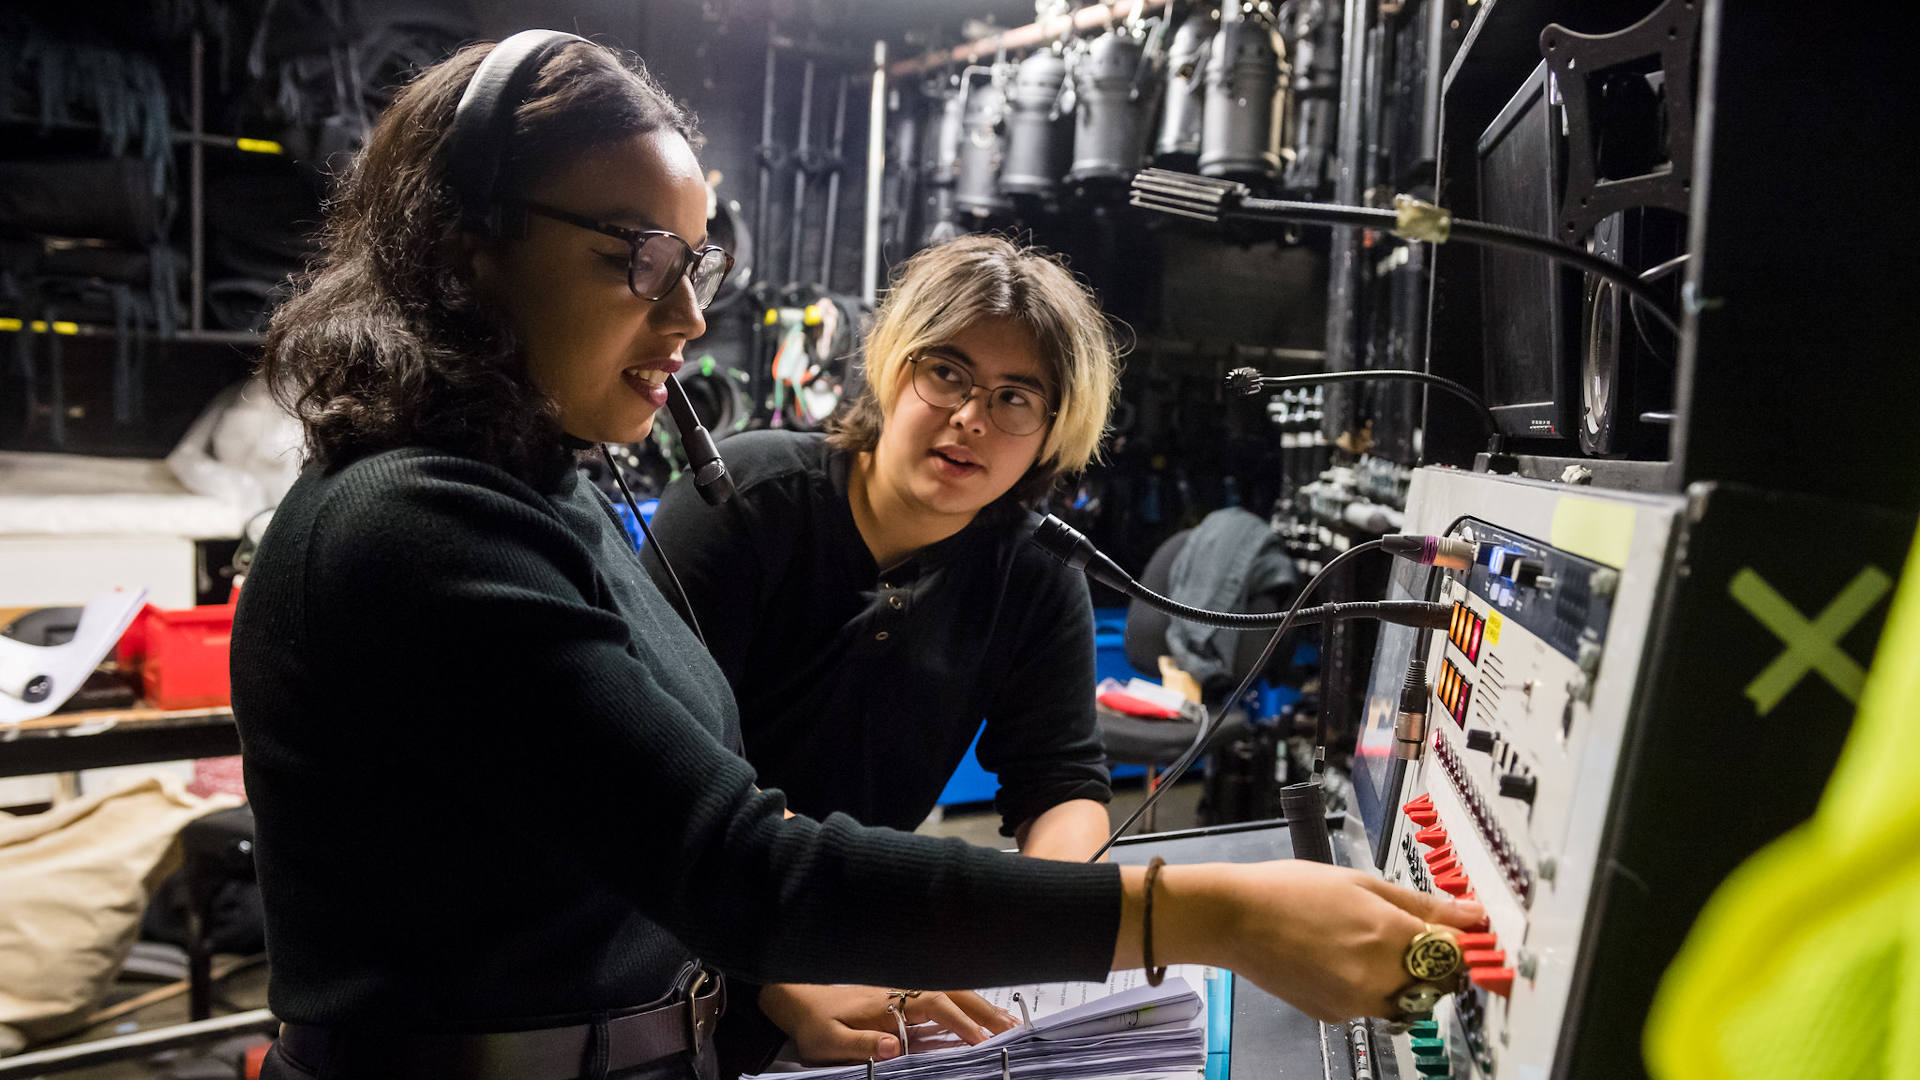 Two women at a switchboard - backstage